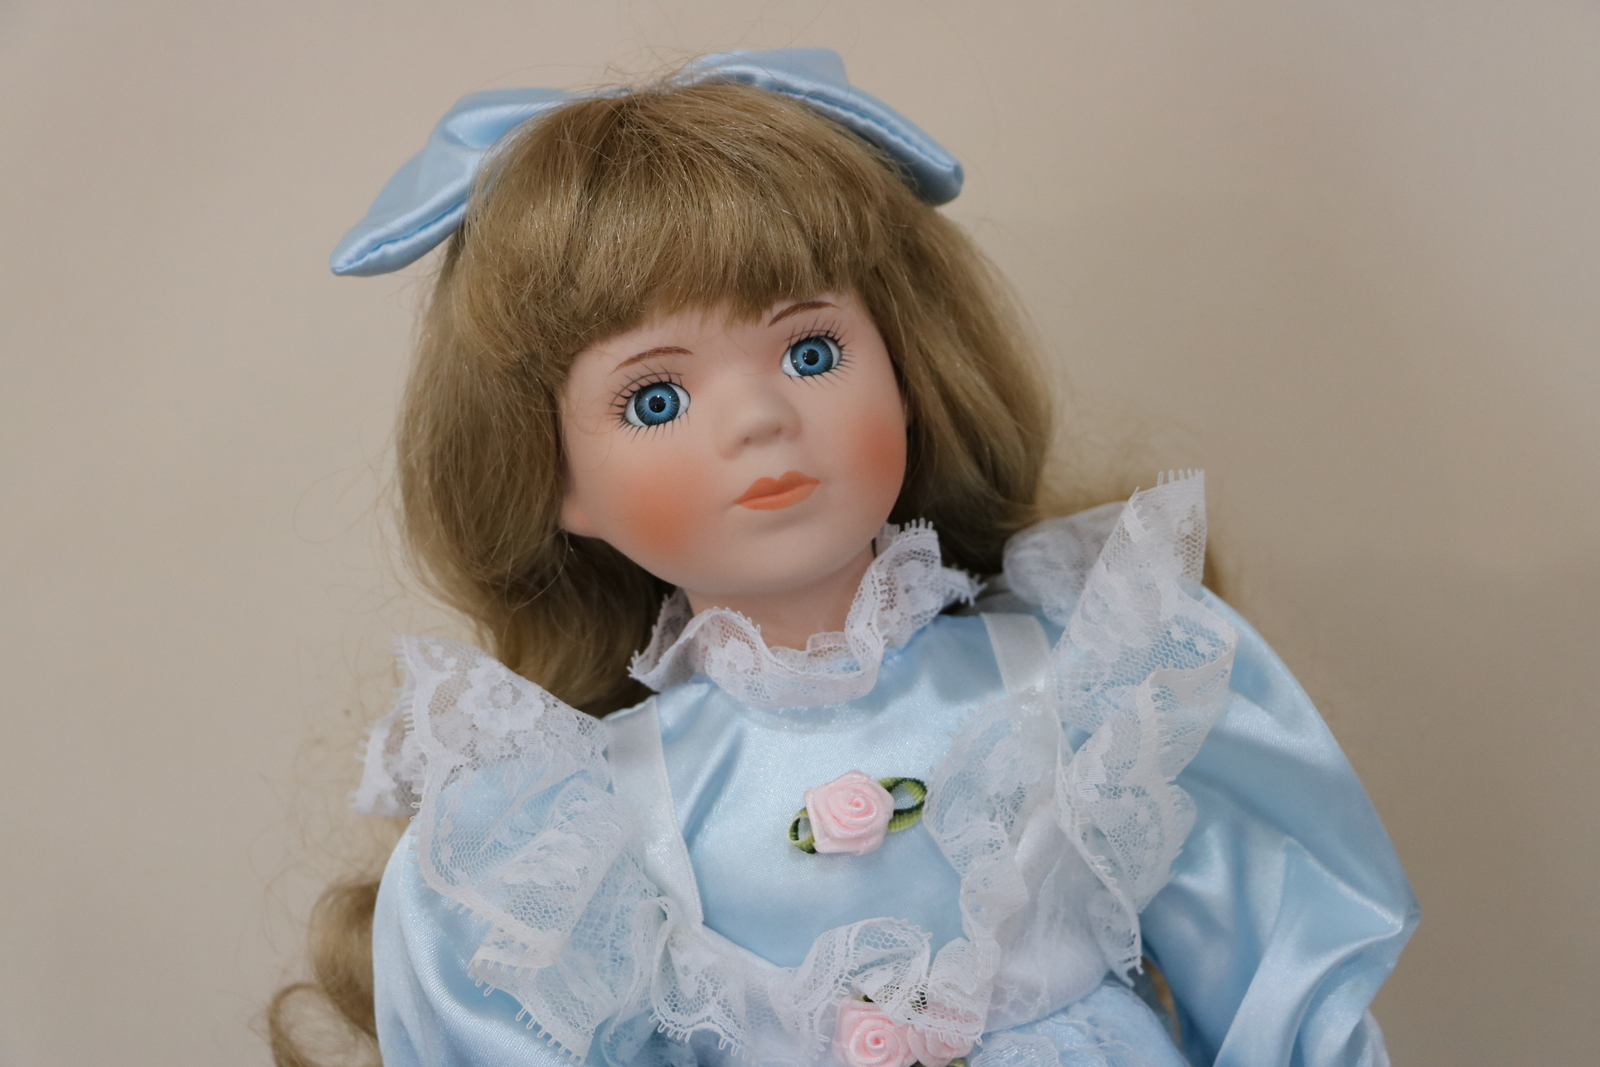 Porcelain Ceramic Doll with Long Blond hair and blue eyes wearing a Blue Dress image 2